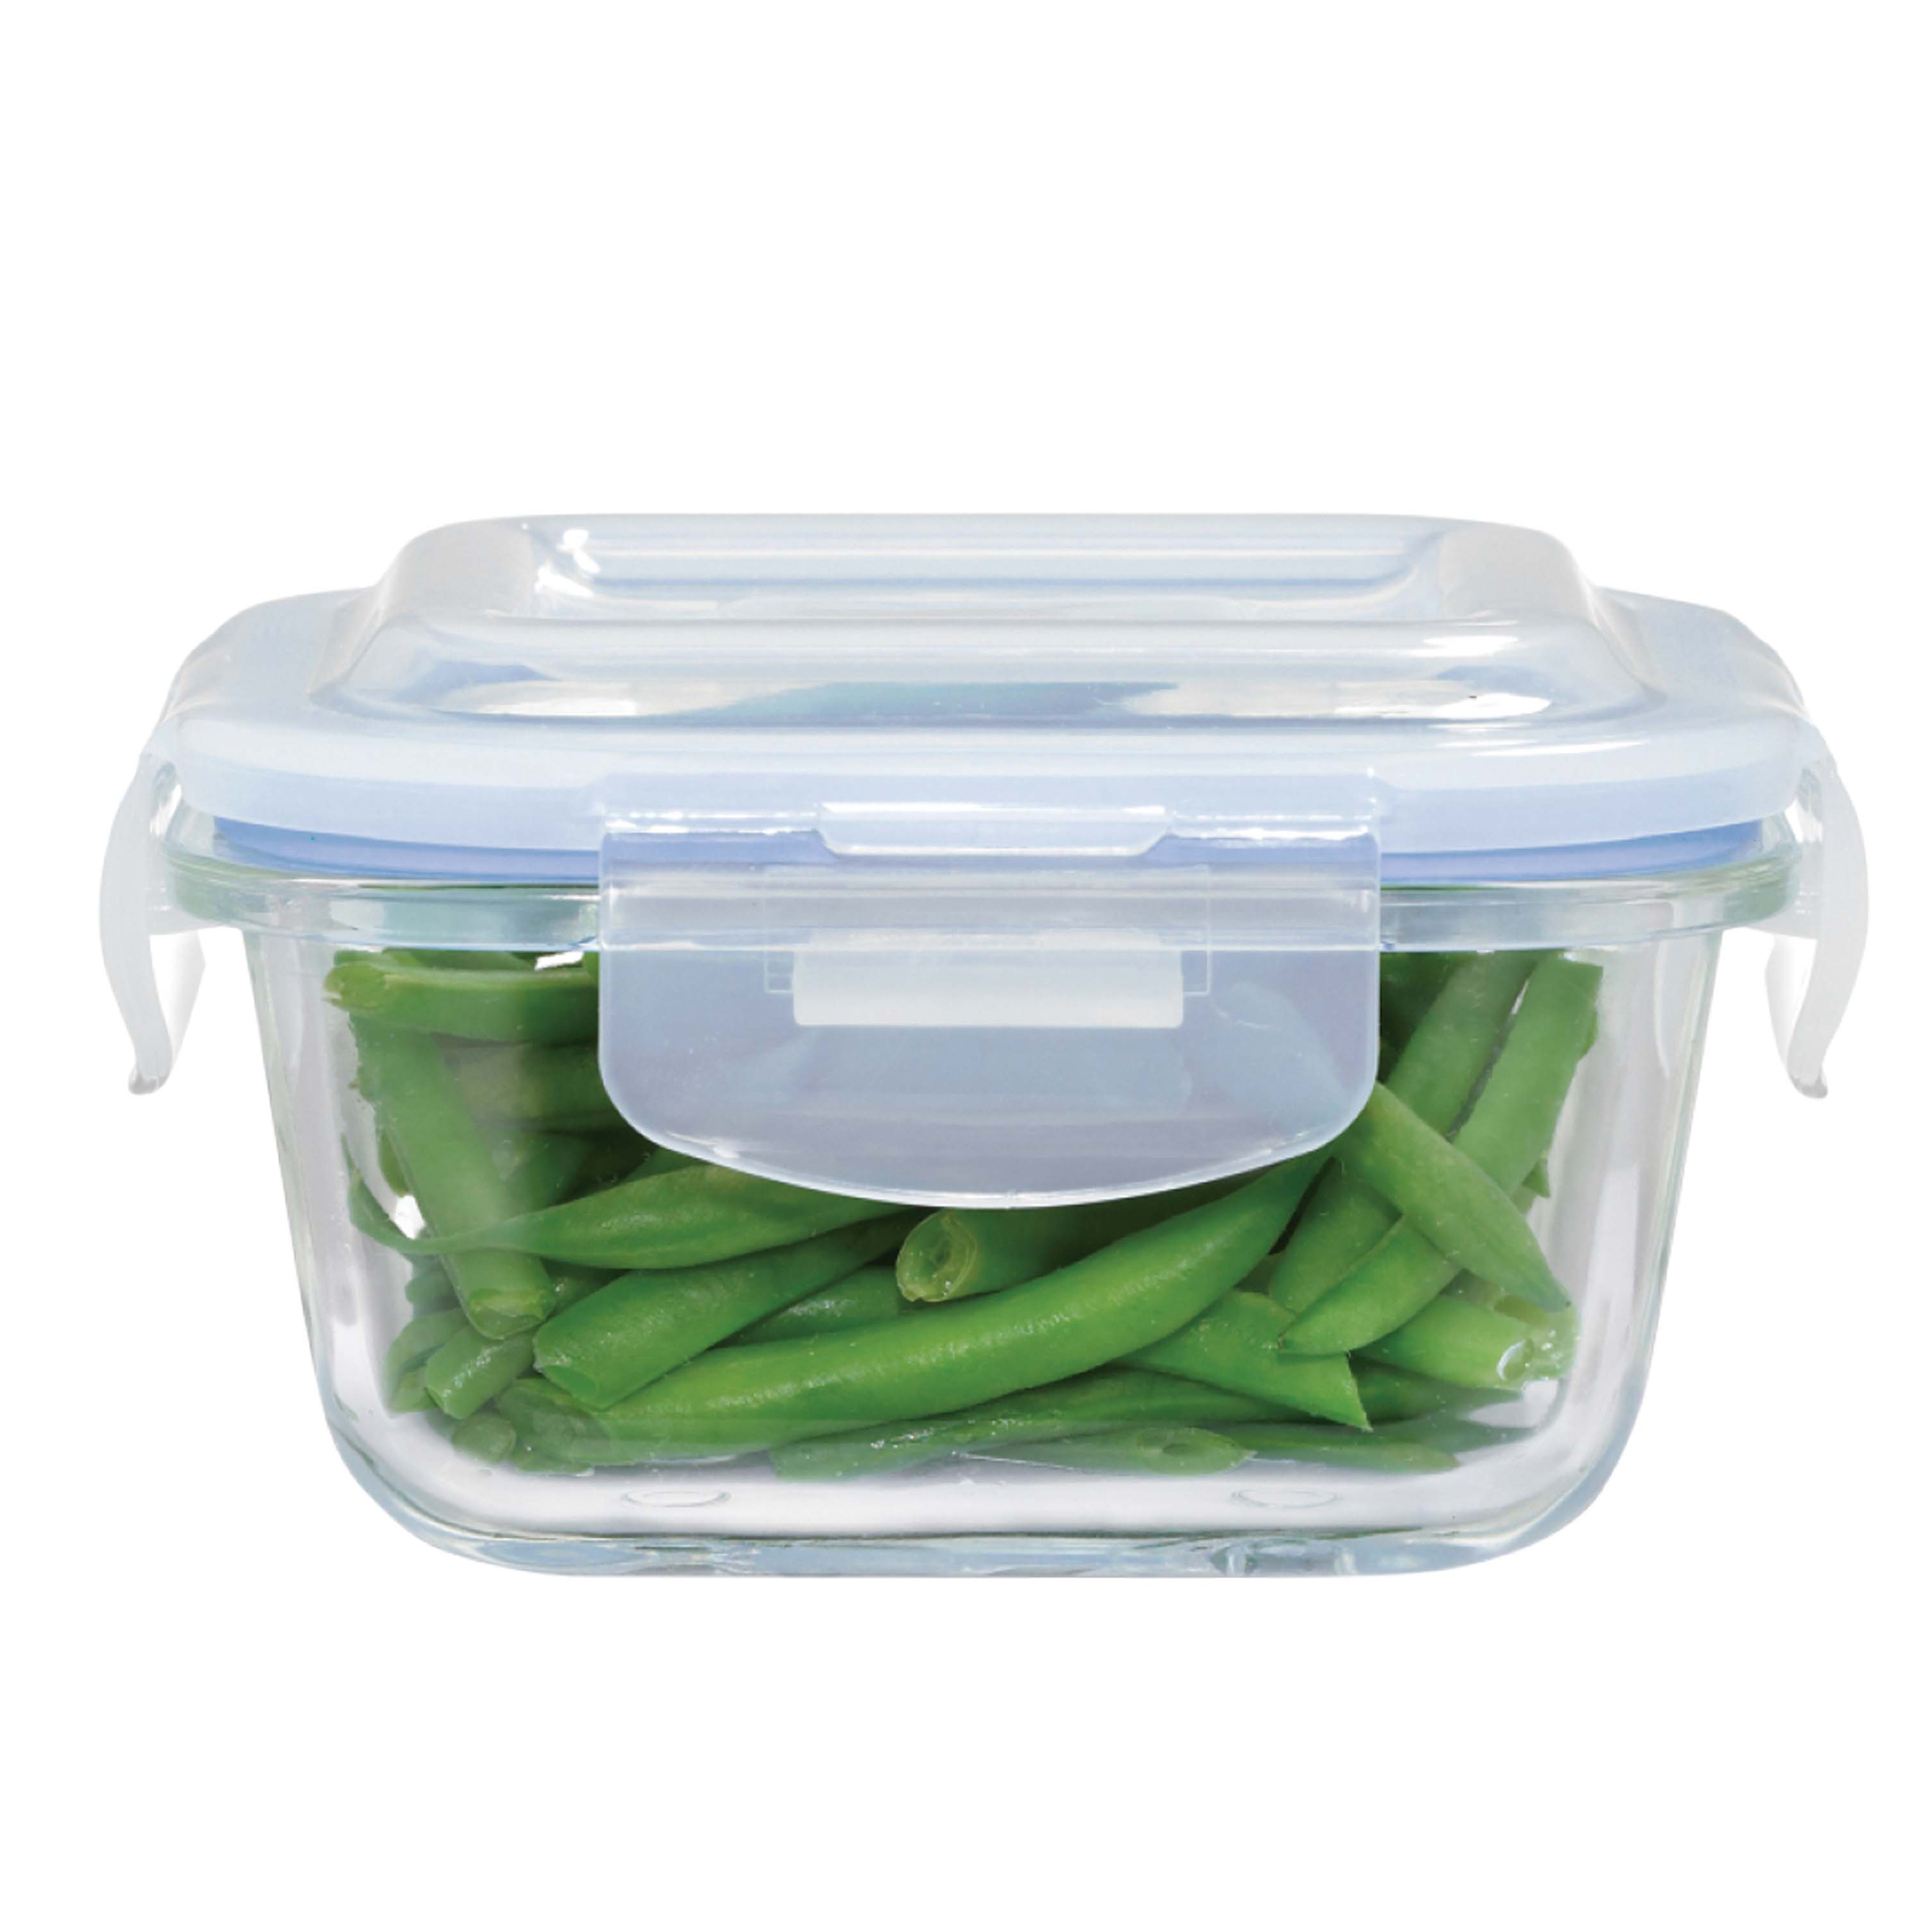 Square Glass Food Container With Pp Lid 320ml Masflex